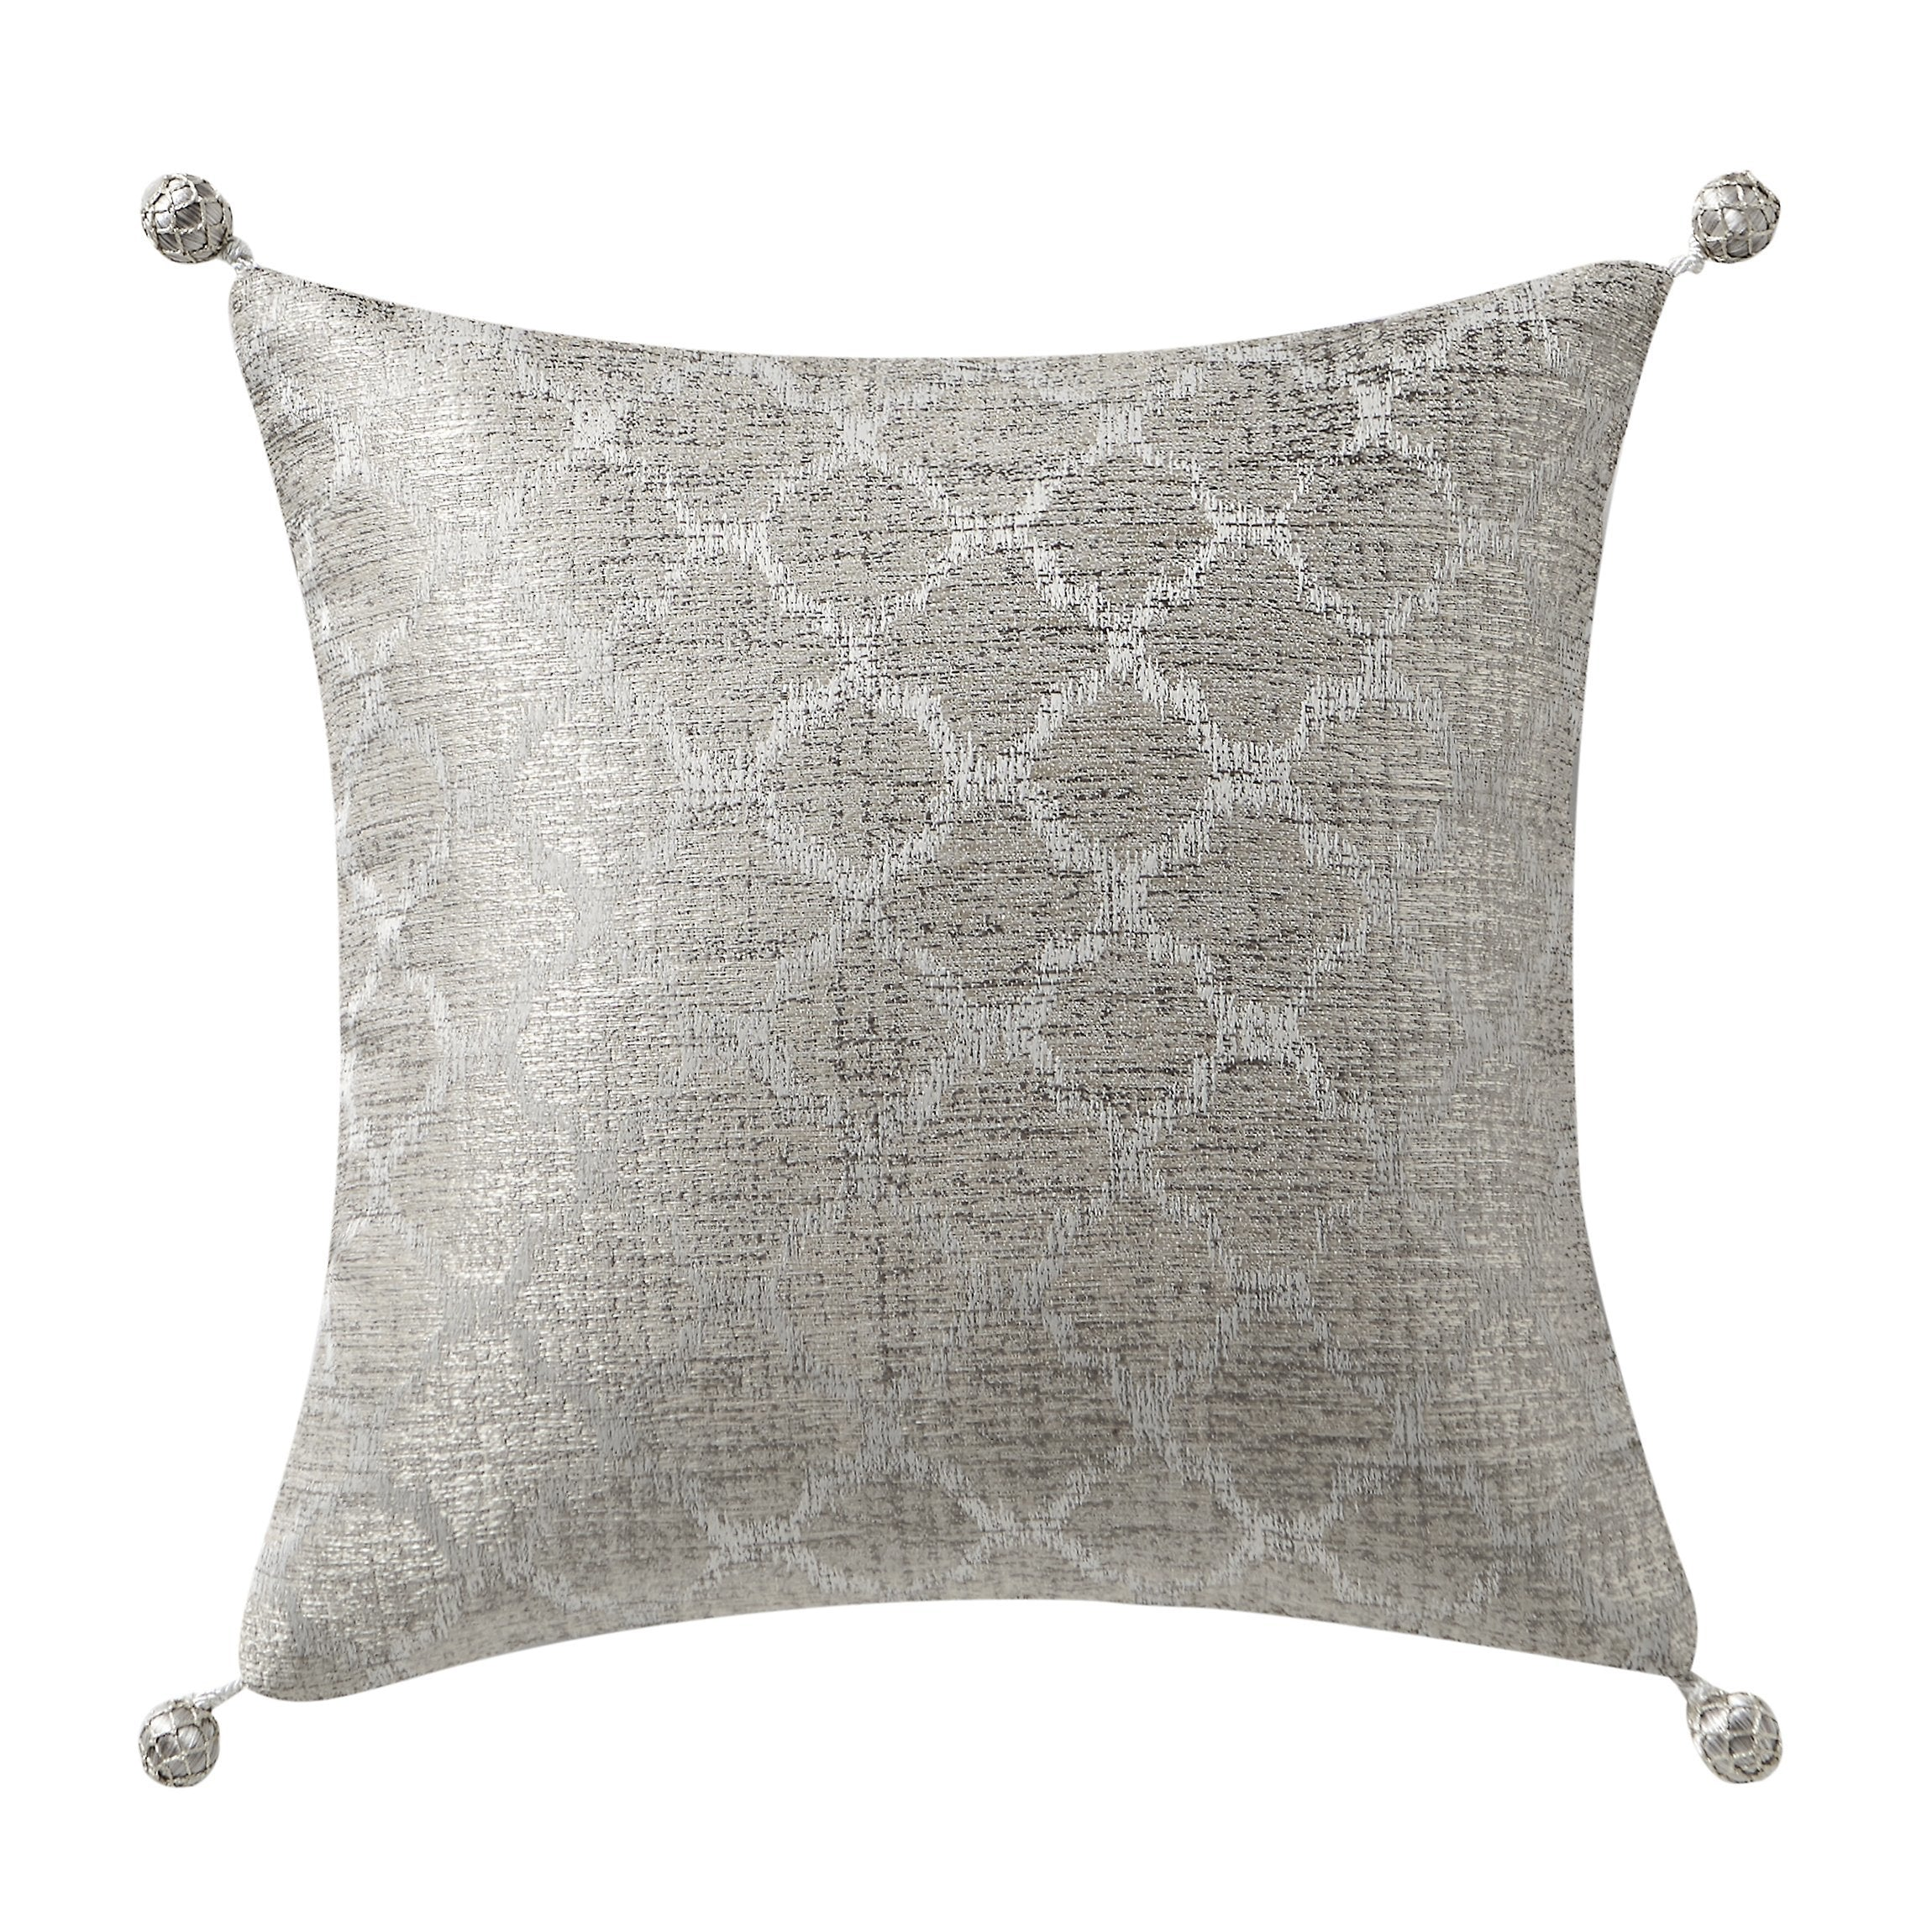 "Arianna Champagne Decorative Throw Pillow 14"" x 14"" [Luxury comforter Sets] [by Latest Bedding]"